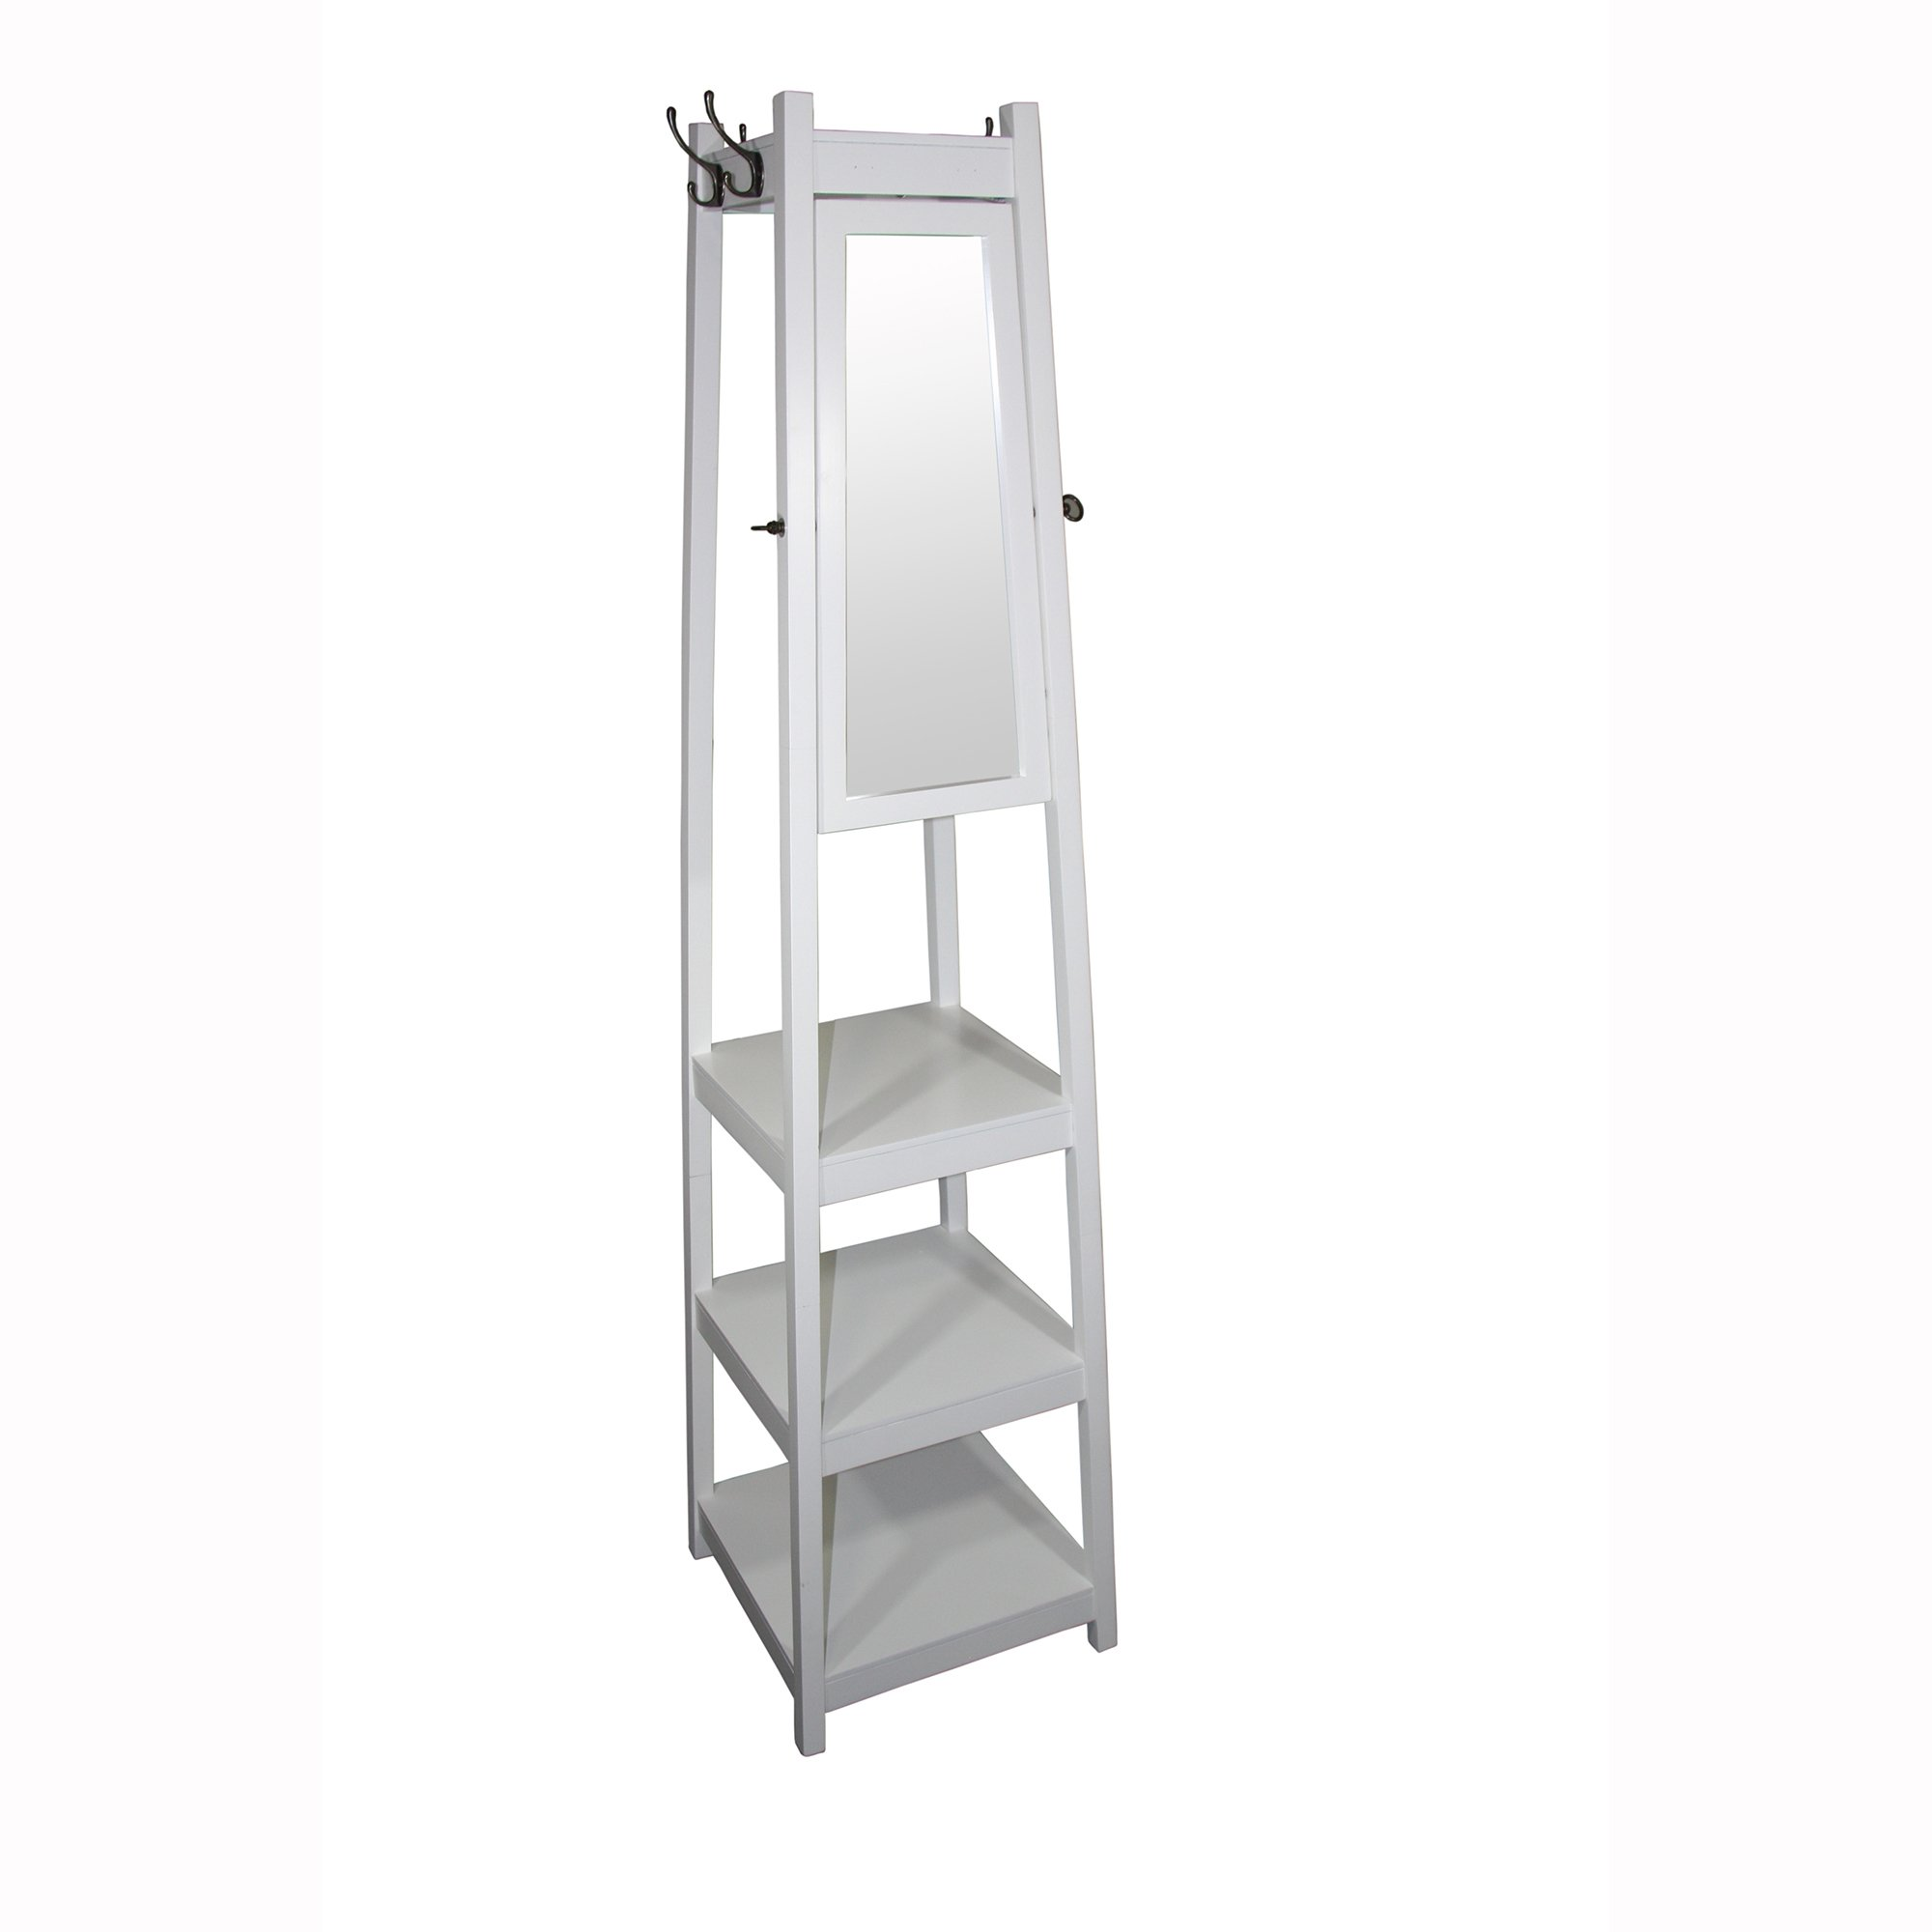 Ore International FW1394W 3-Tier Tower Shoe/Coat Rack and Mirror, 72'', White